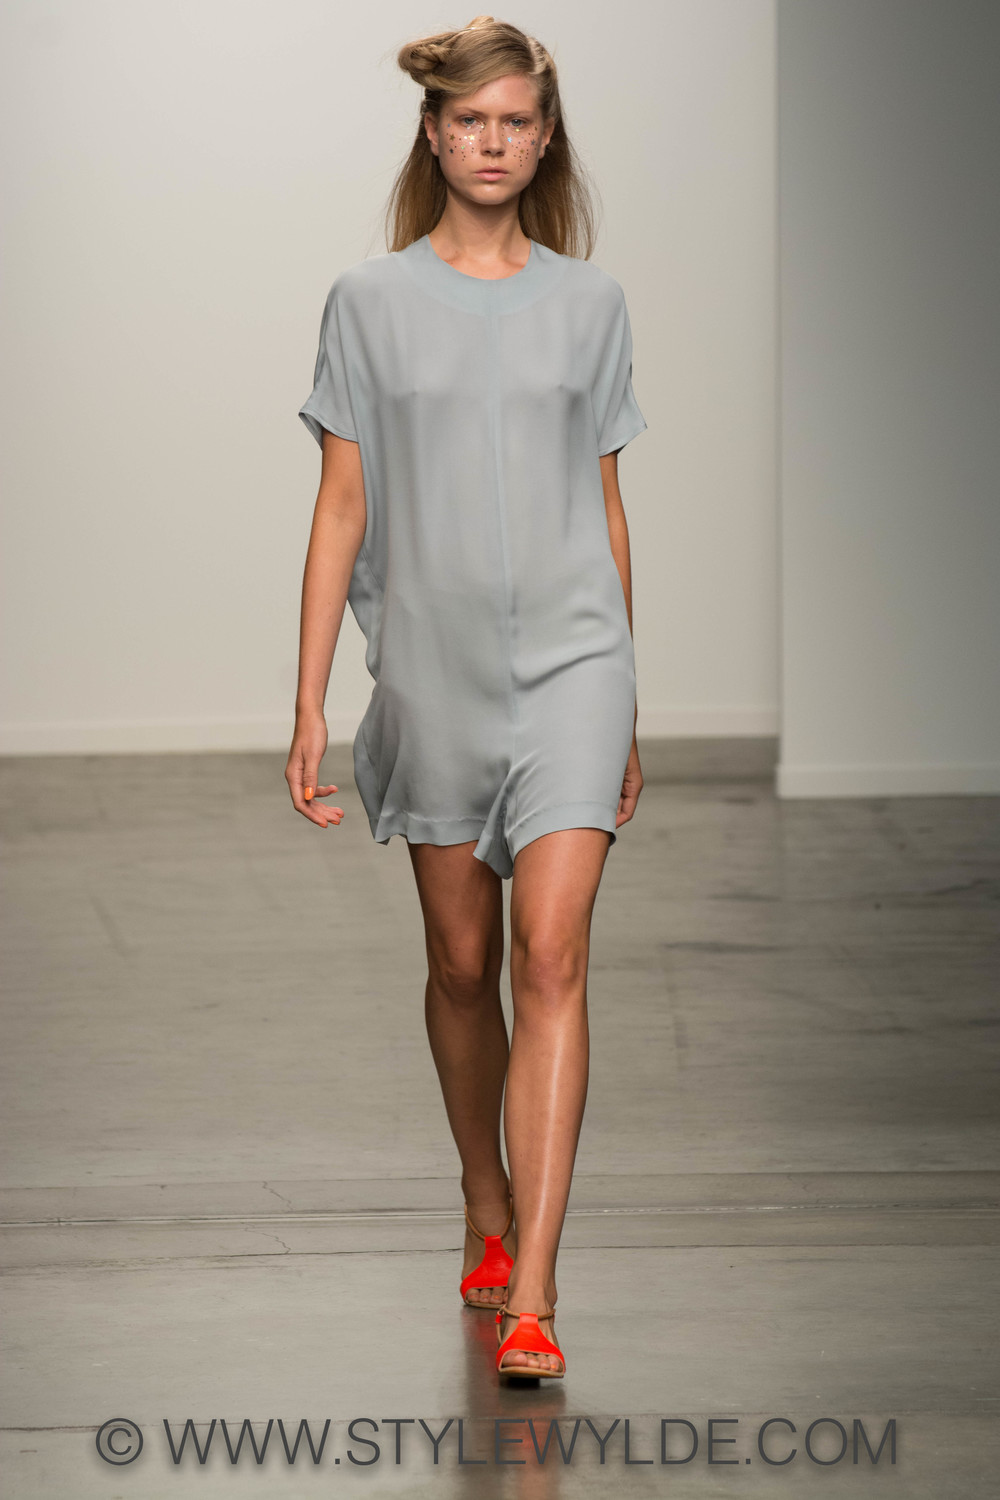 StyleWylde_adetacher_FOH_SS15_sw (23 of 37).jpg